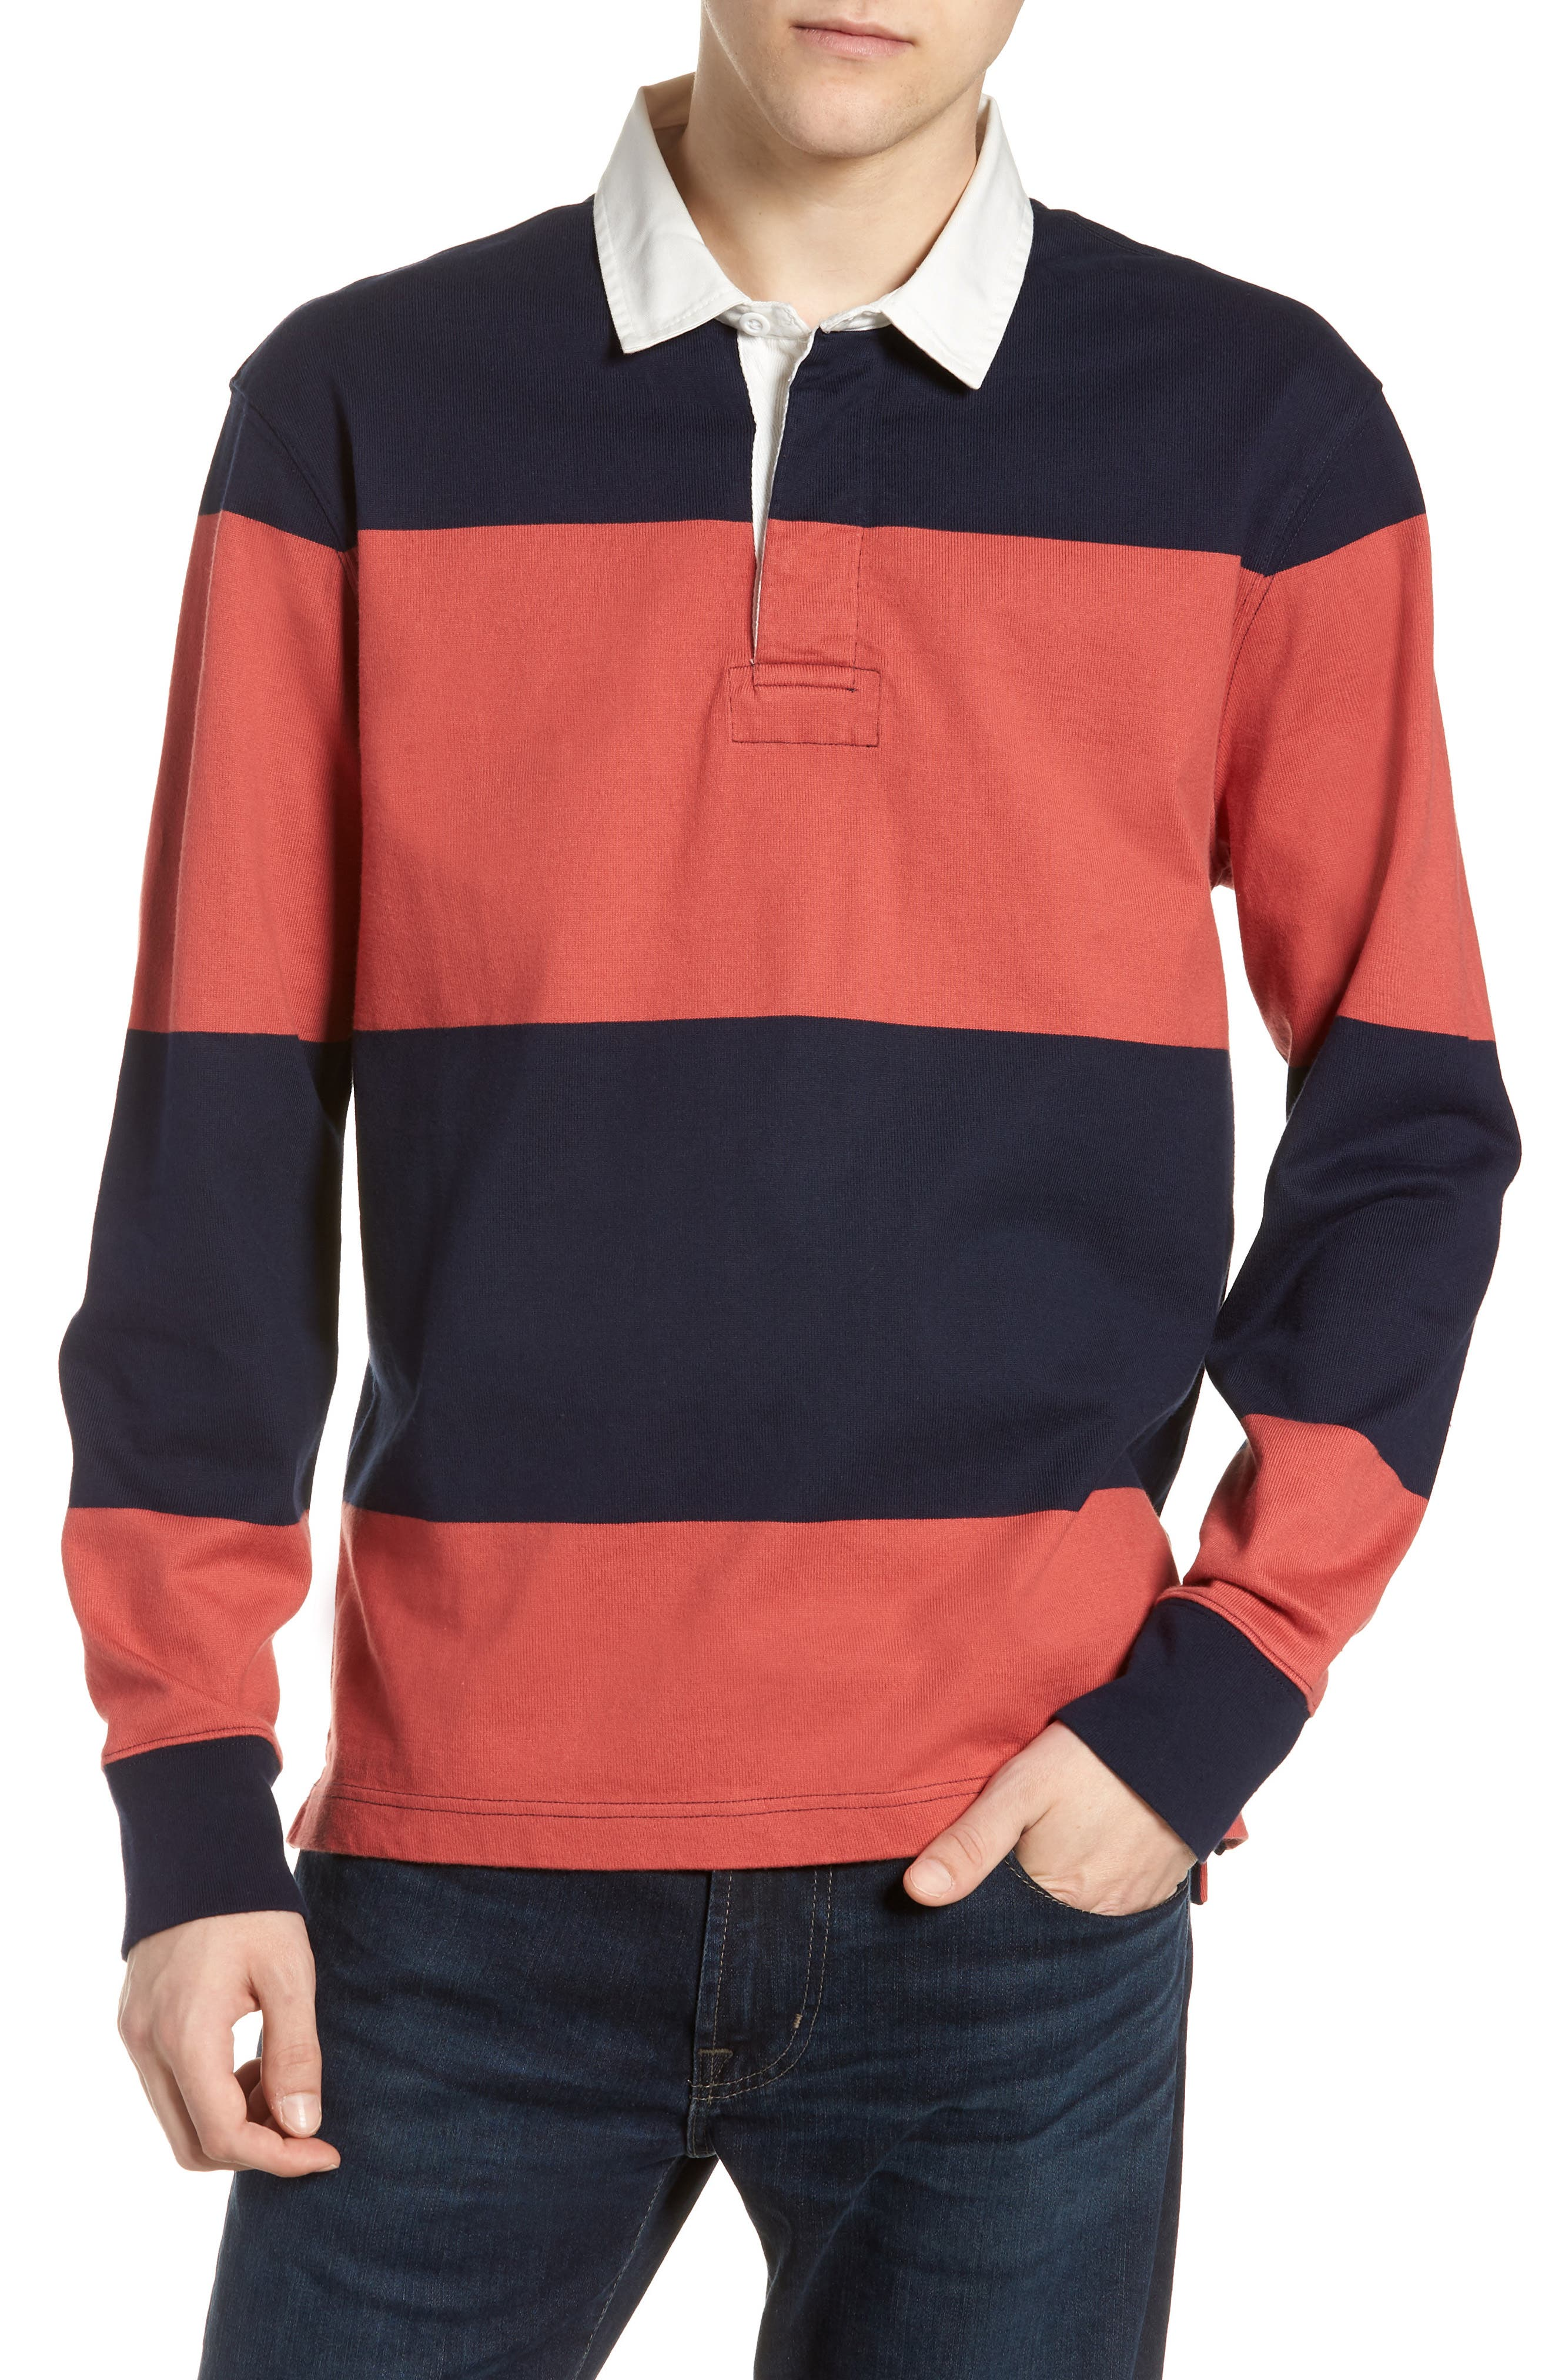 1984 Stripe Rugby Shirt,                         Main,                         color, 600